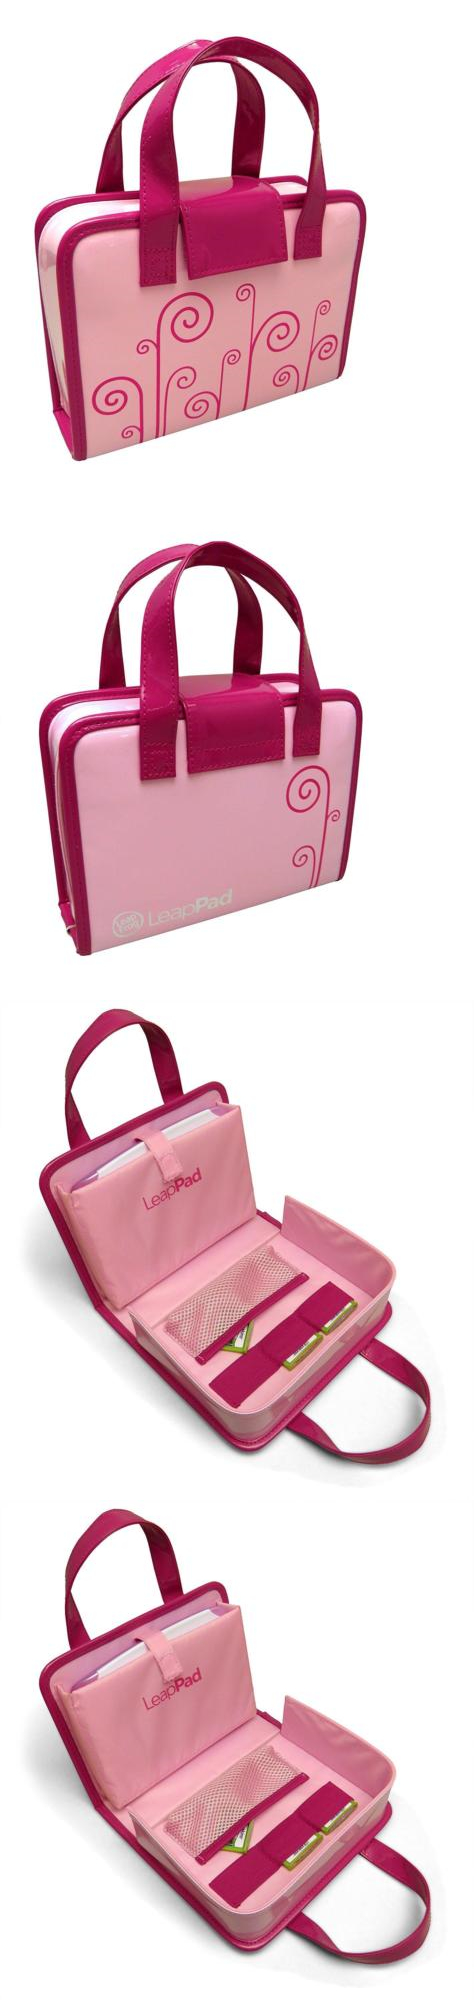 Cases and Accessories 177917  Leapfrog Leappad Fashion Handbag Works With  Leappad2 And Leappad1 -  02b37a7f3417b